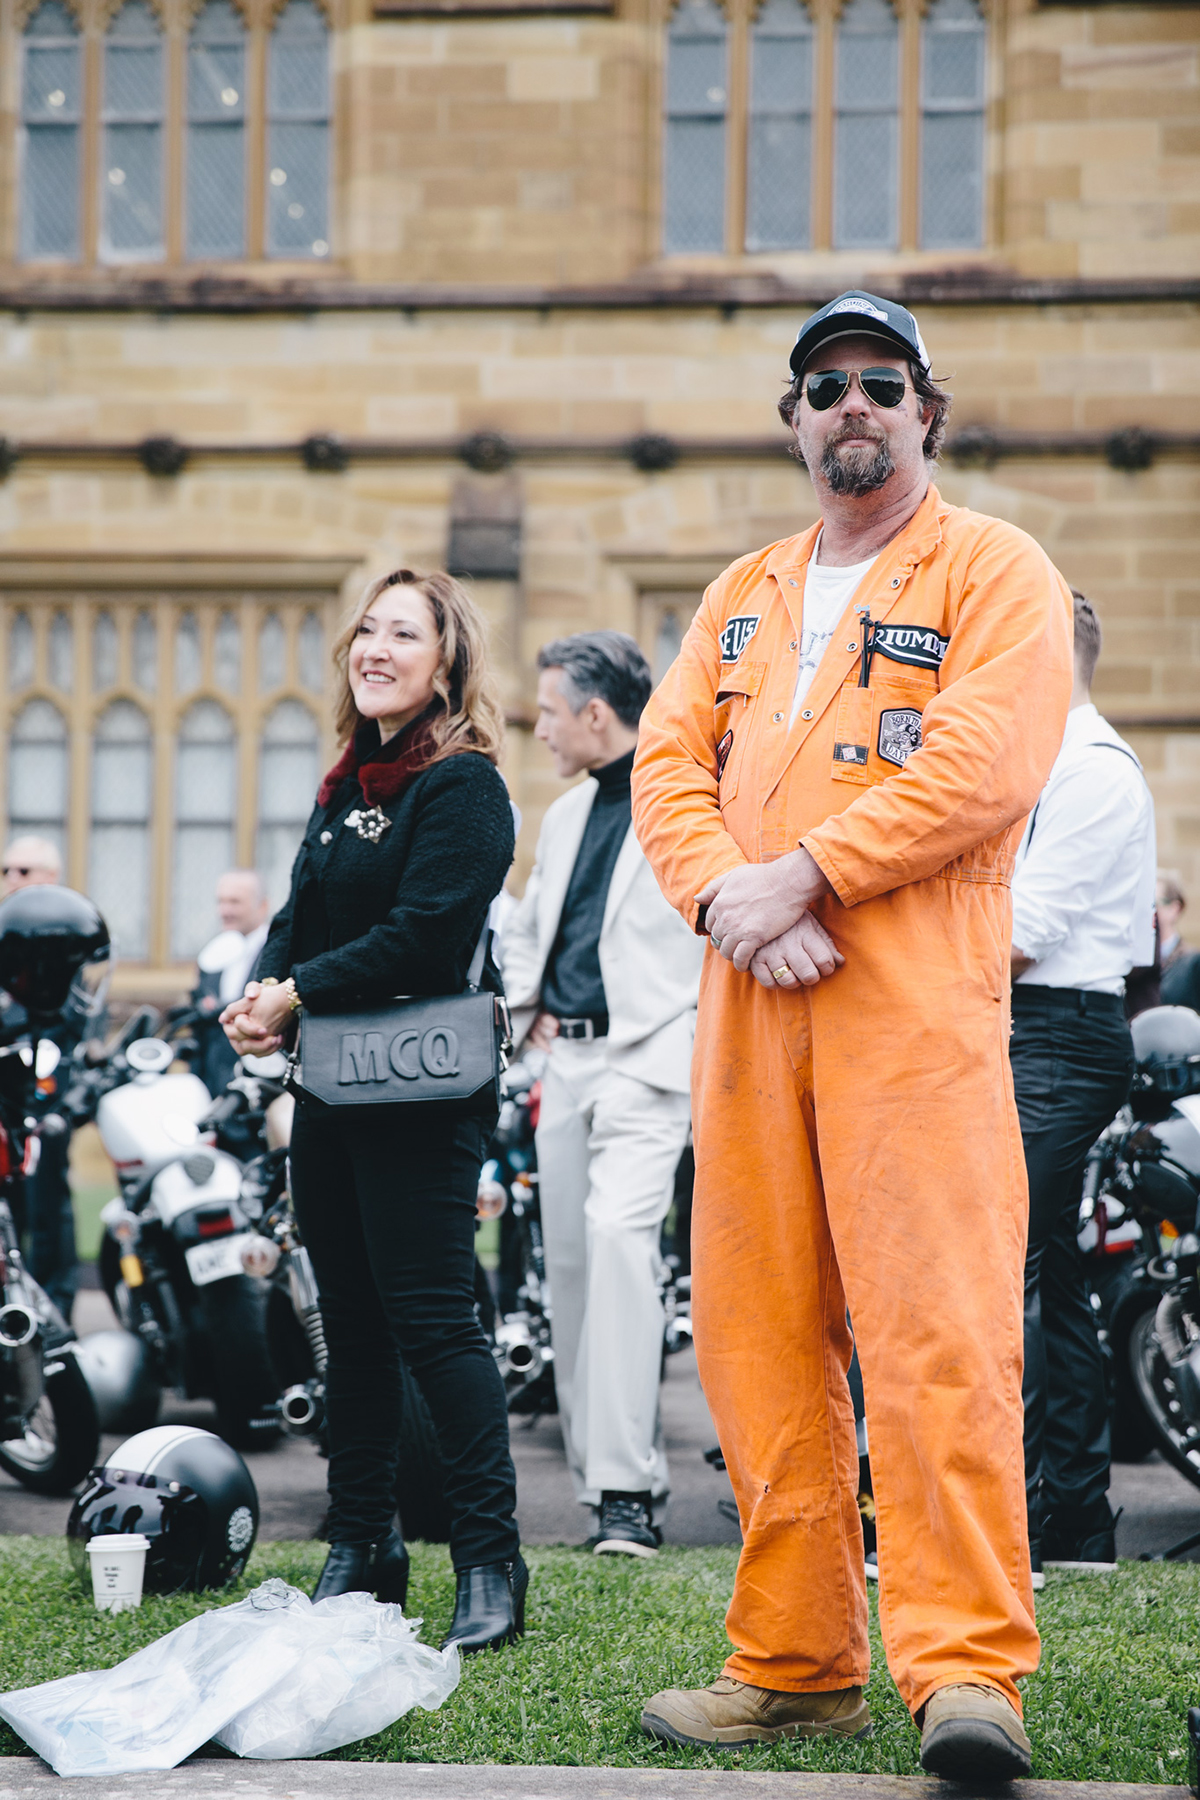 gentlemans_ride_sydney_1571